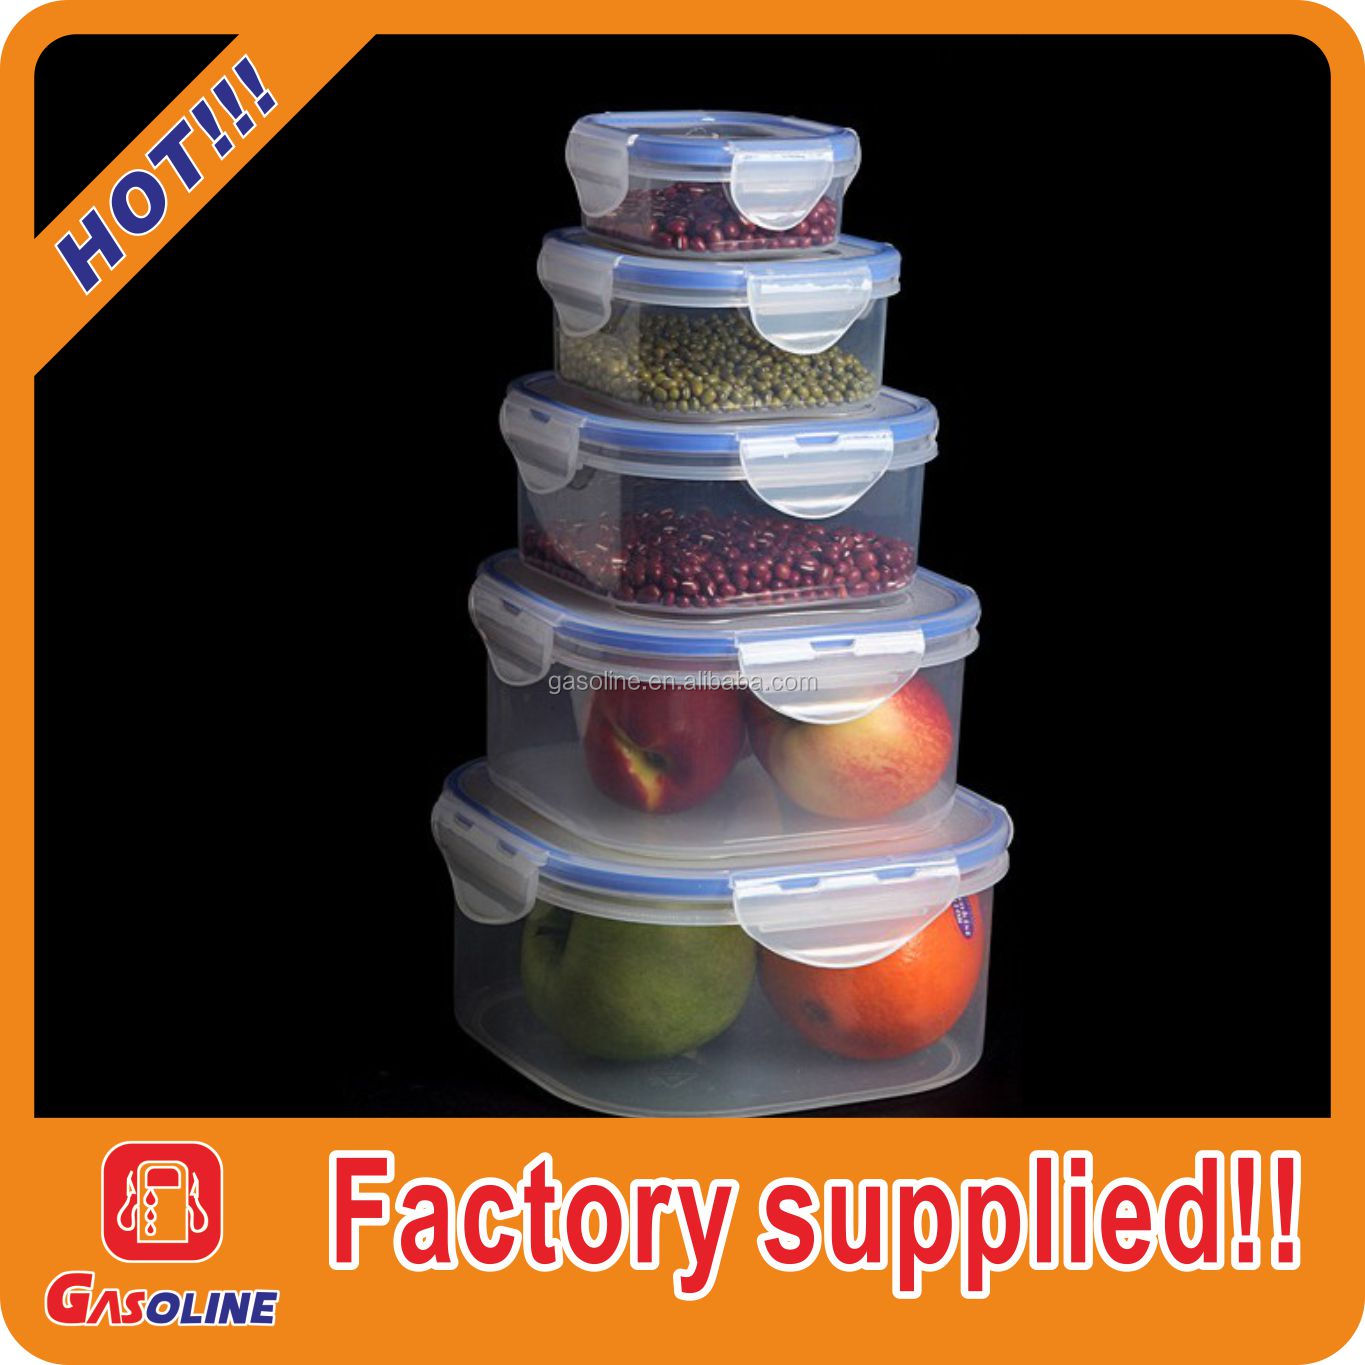 High quality factory supplied for office plastic storage containers